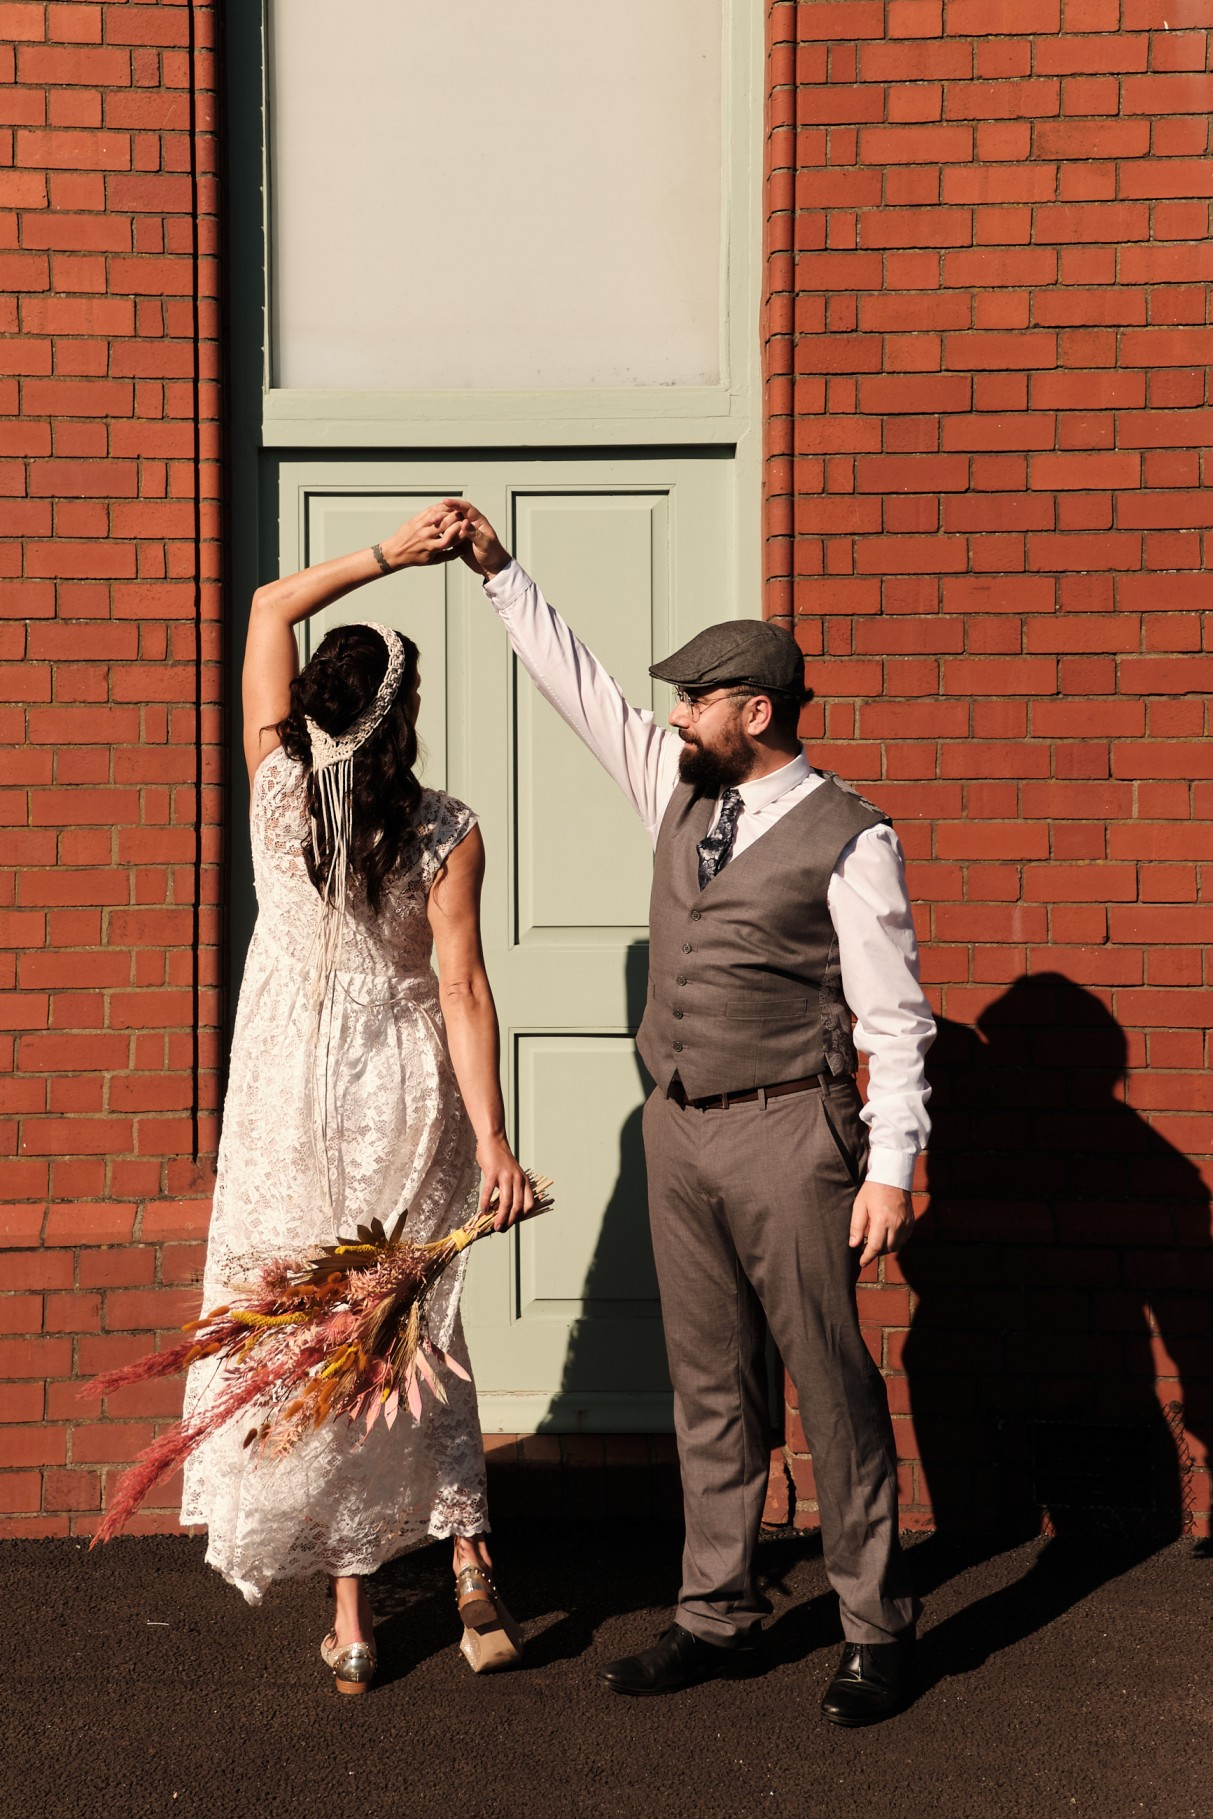 city elopement- cardiff bay wedding- wales elopement- urban elopement - cardiff wedding - colourful summer wedding- bride and groom dancing